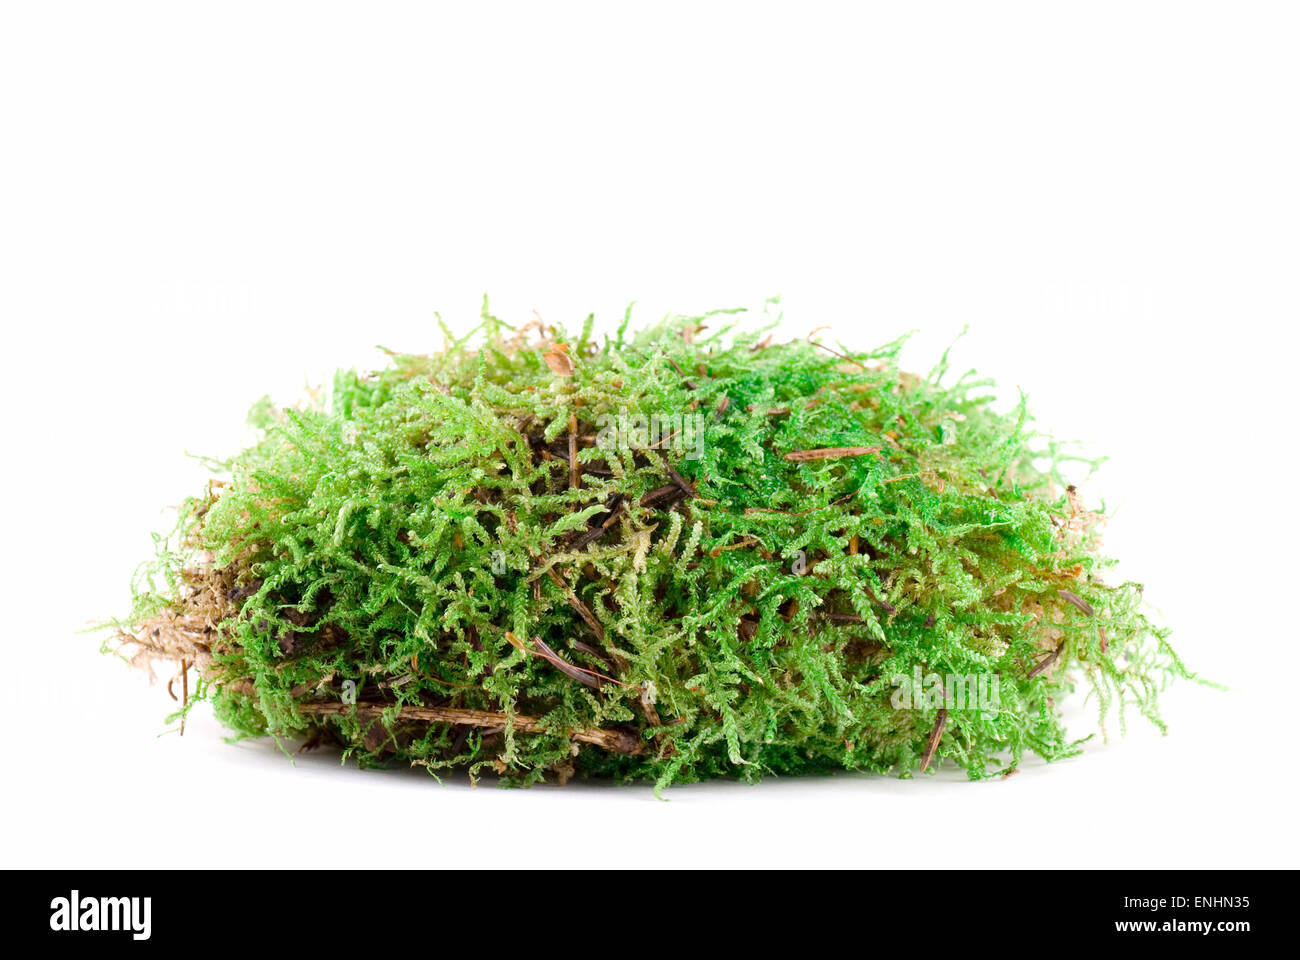 Green moss pillow on white background. - Stock Image